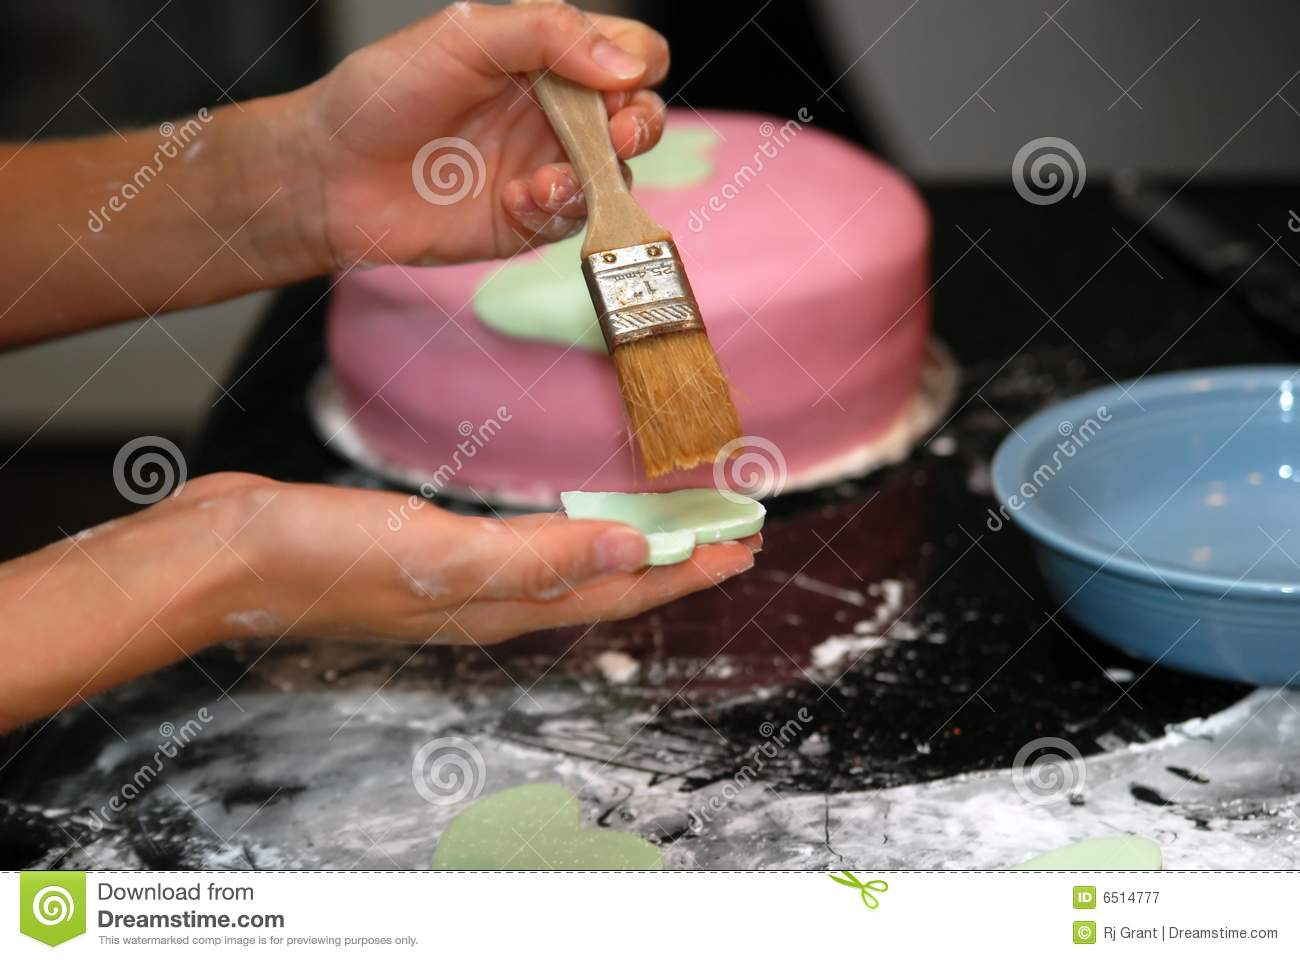 Cake Decorating Stock Images : Cake Decorating Royalty Free Stock Photography - Image ...